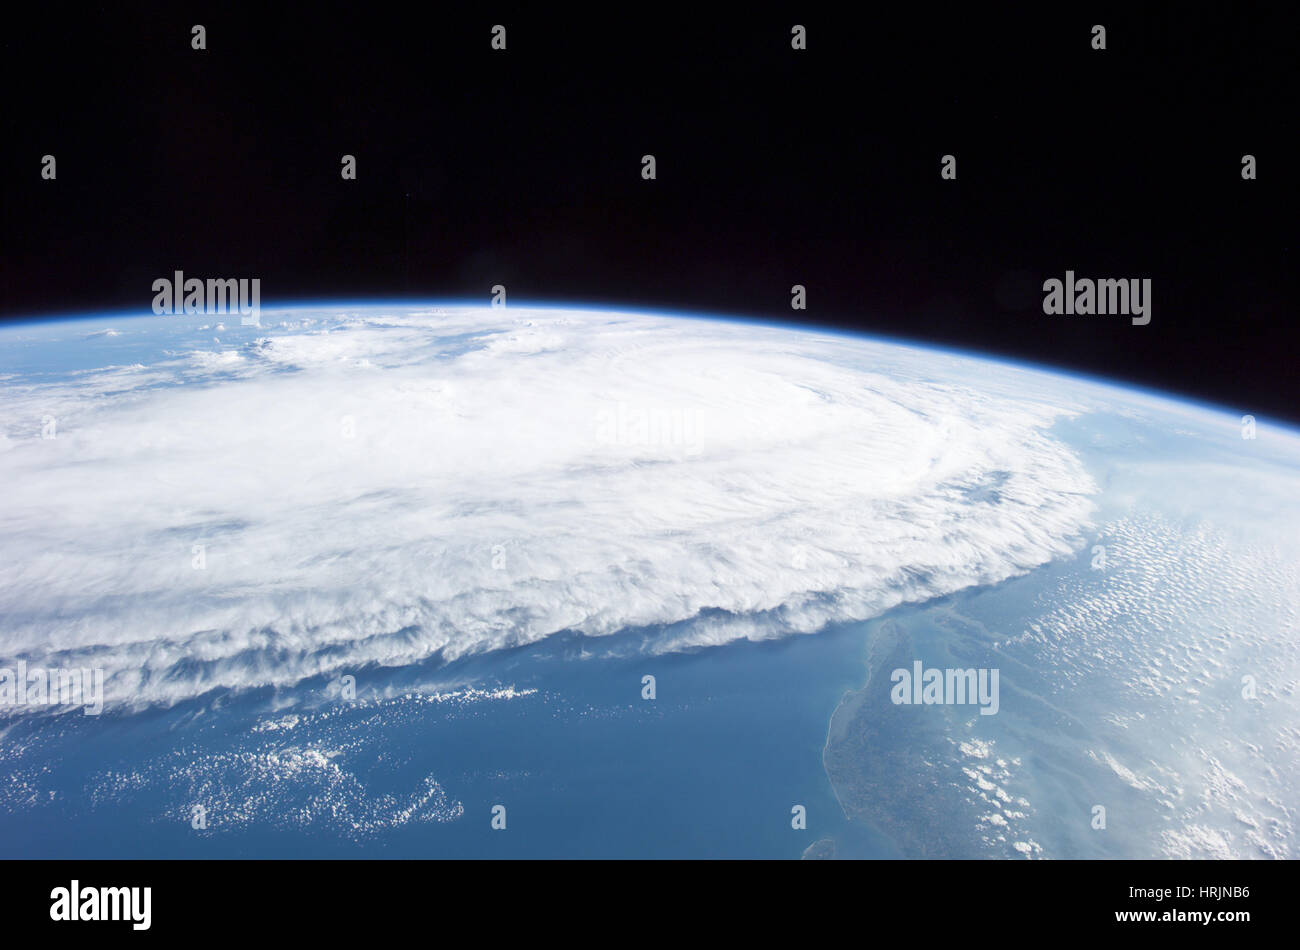 L'ouragan Ophelia, ISS Image, 2005 Photo Stock